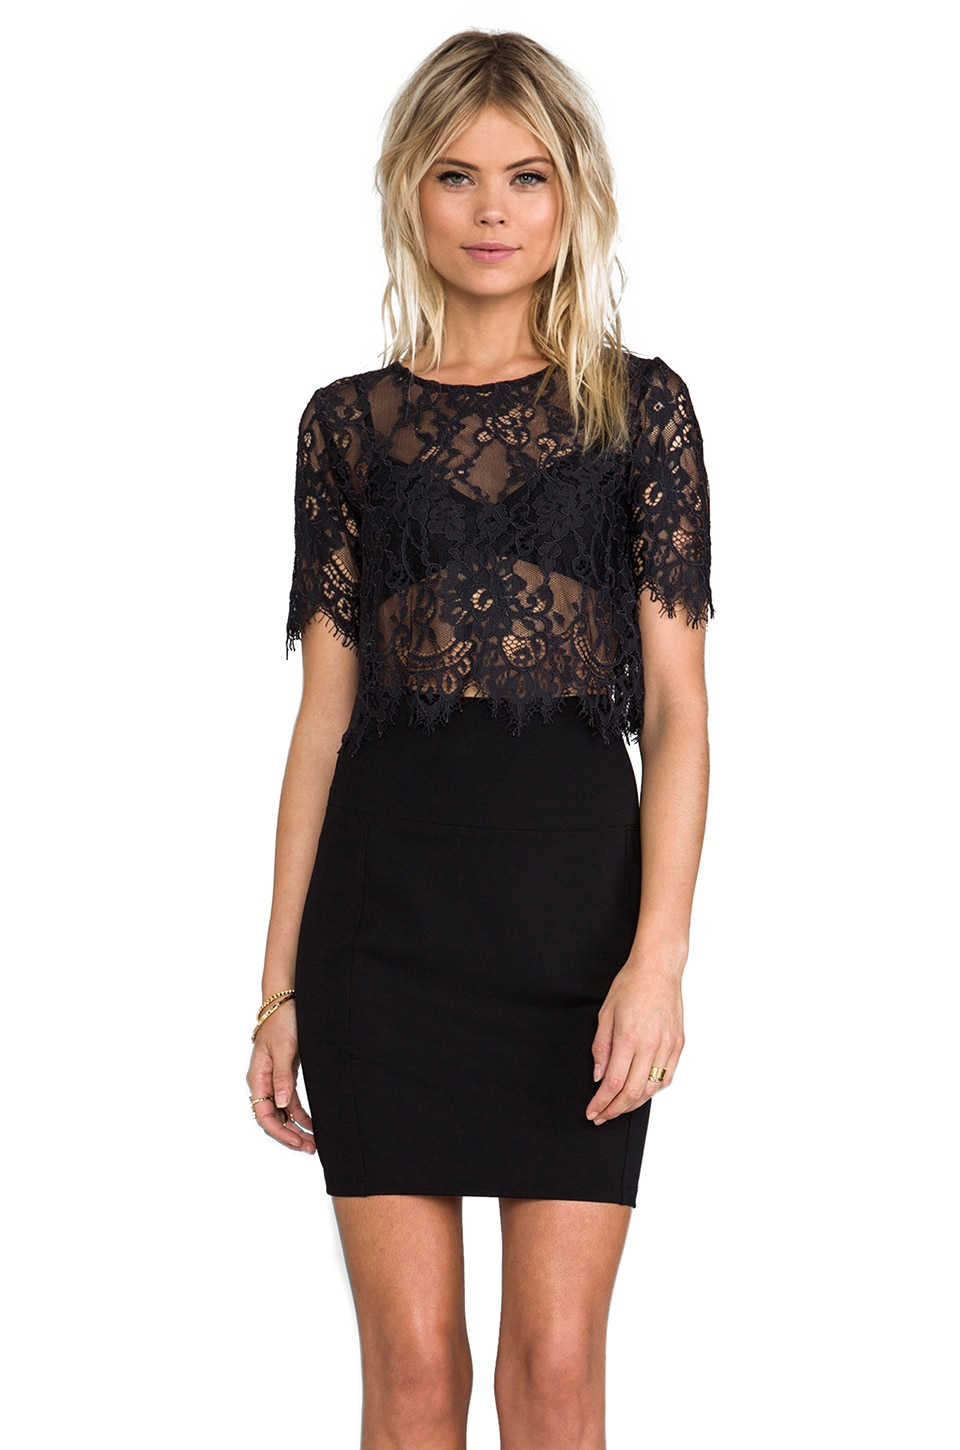 Alexis Lisette Crop Lace Top With Cap Sleeves in Black Lace